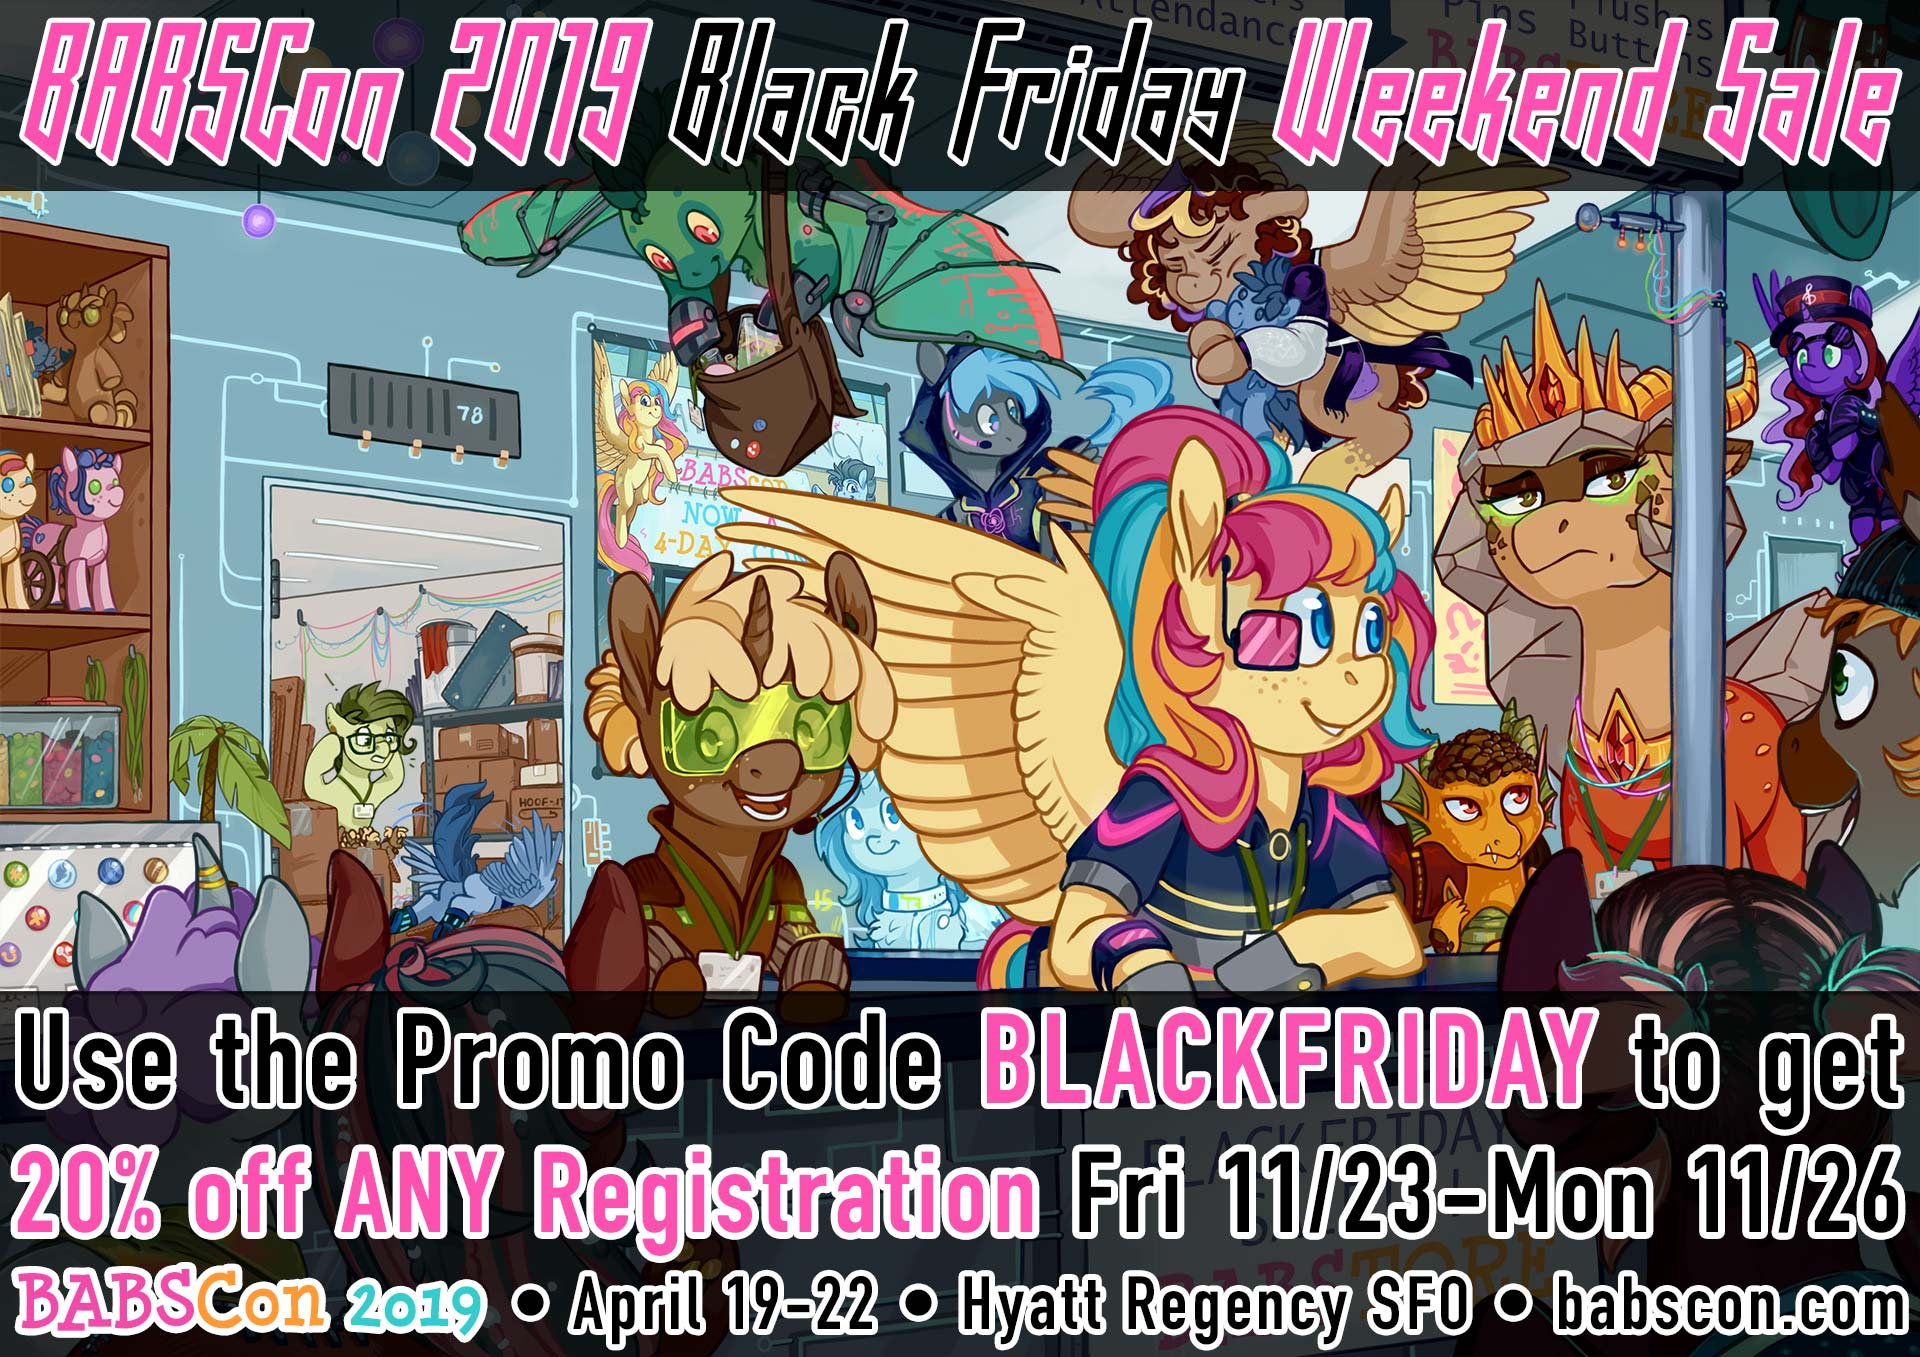 BABSCon 2019 is Carving Up Prices for Black Friday Weekend